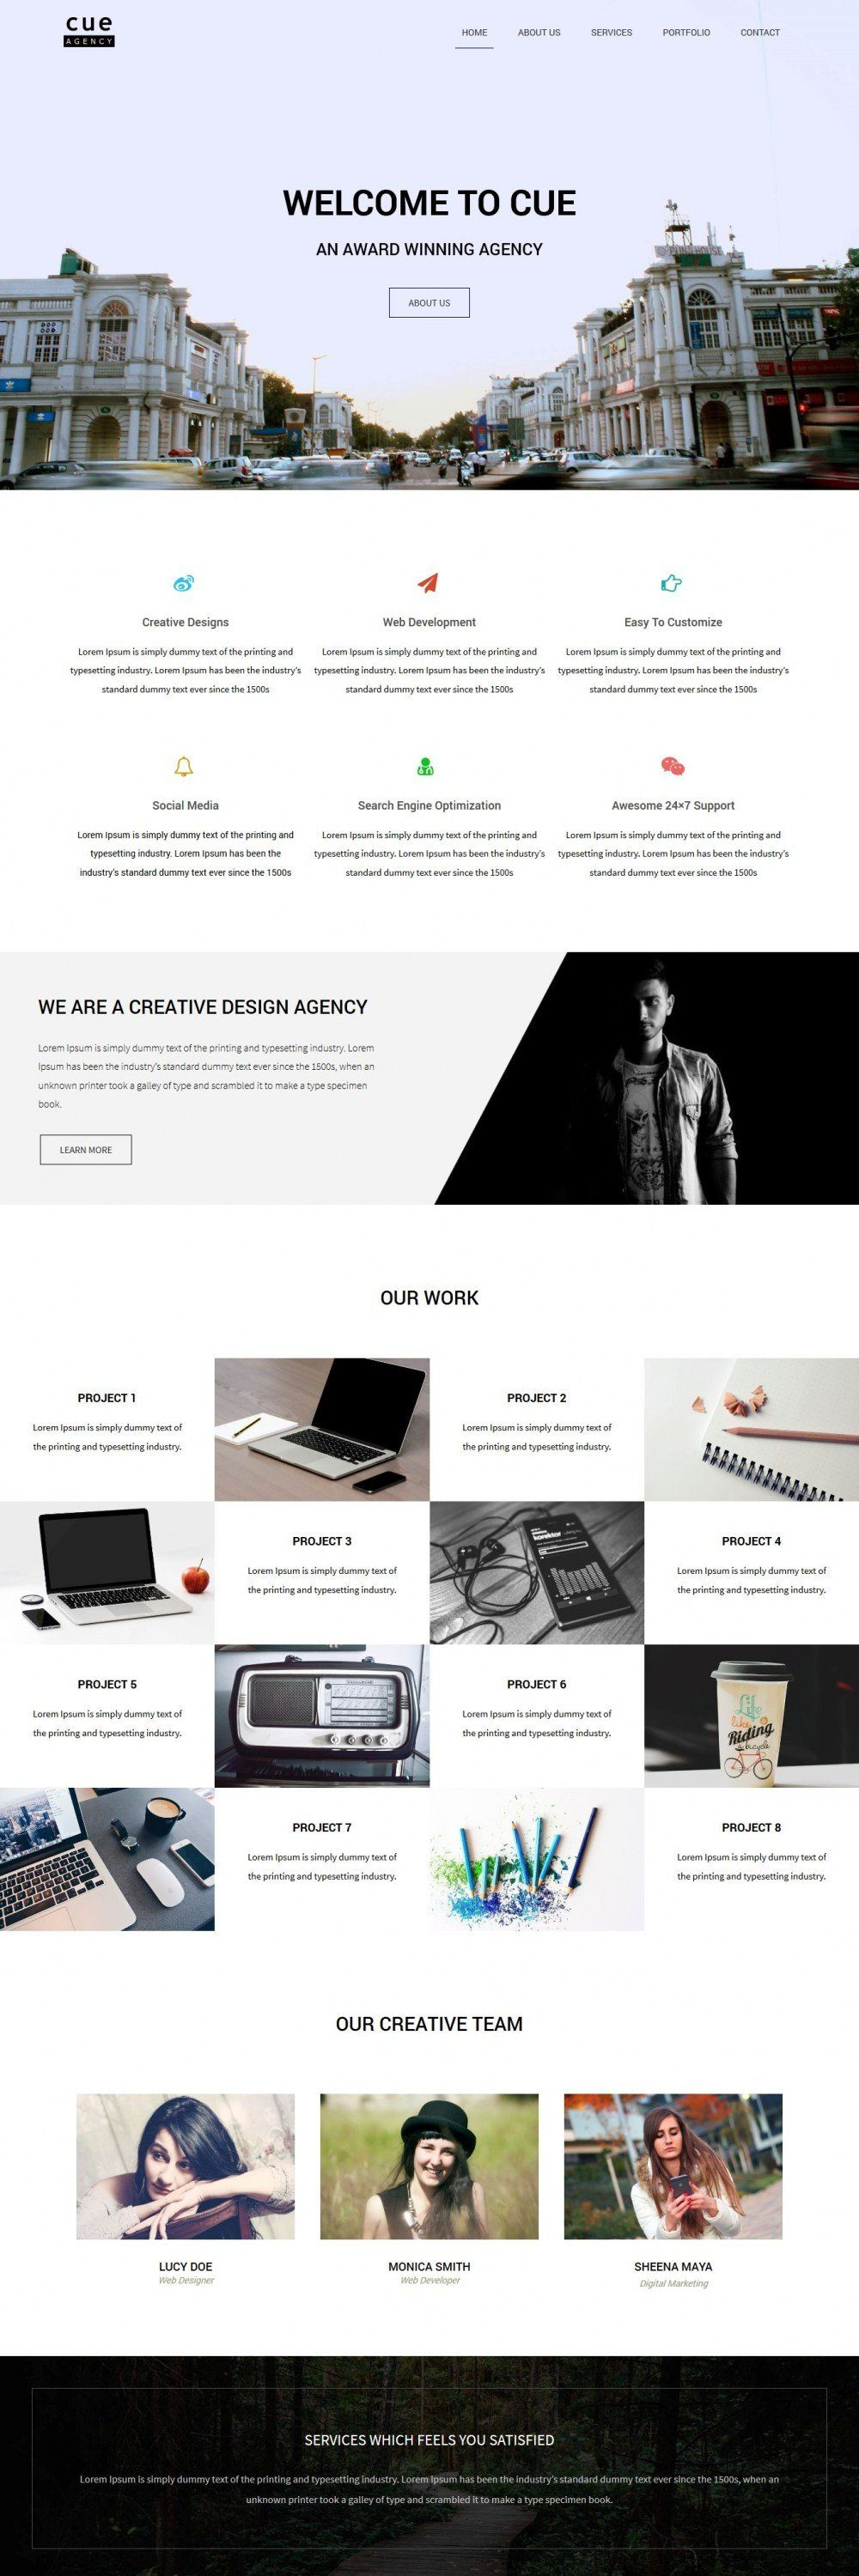 Free Cue Creative Web Design Agency Drupal Theme